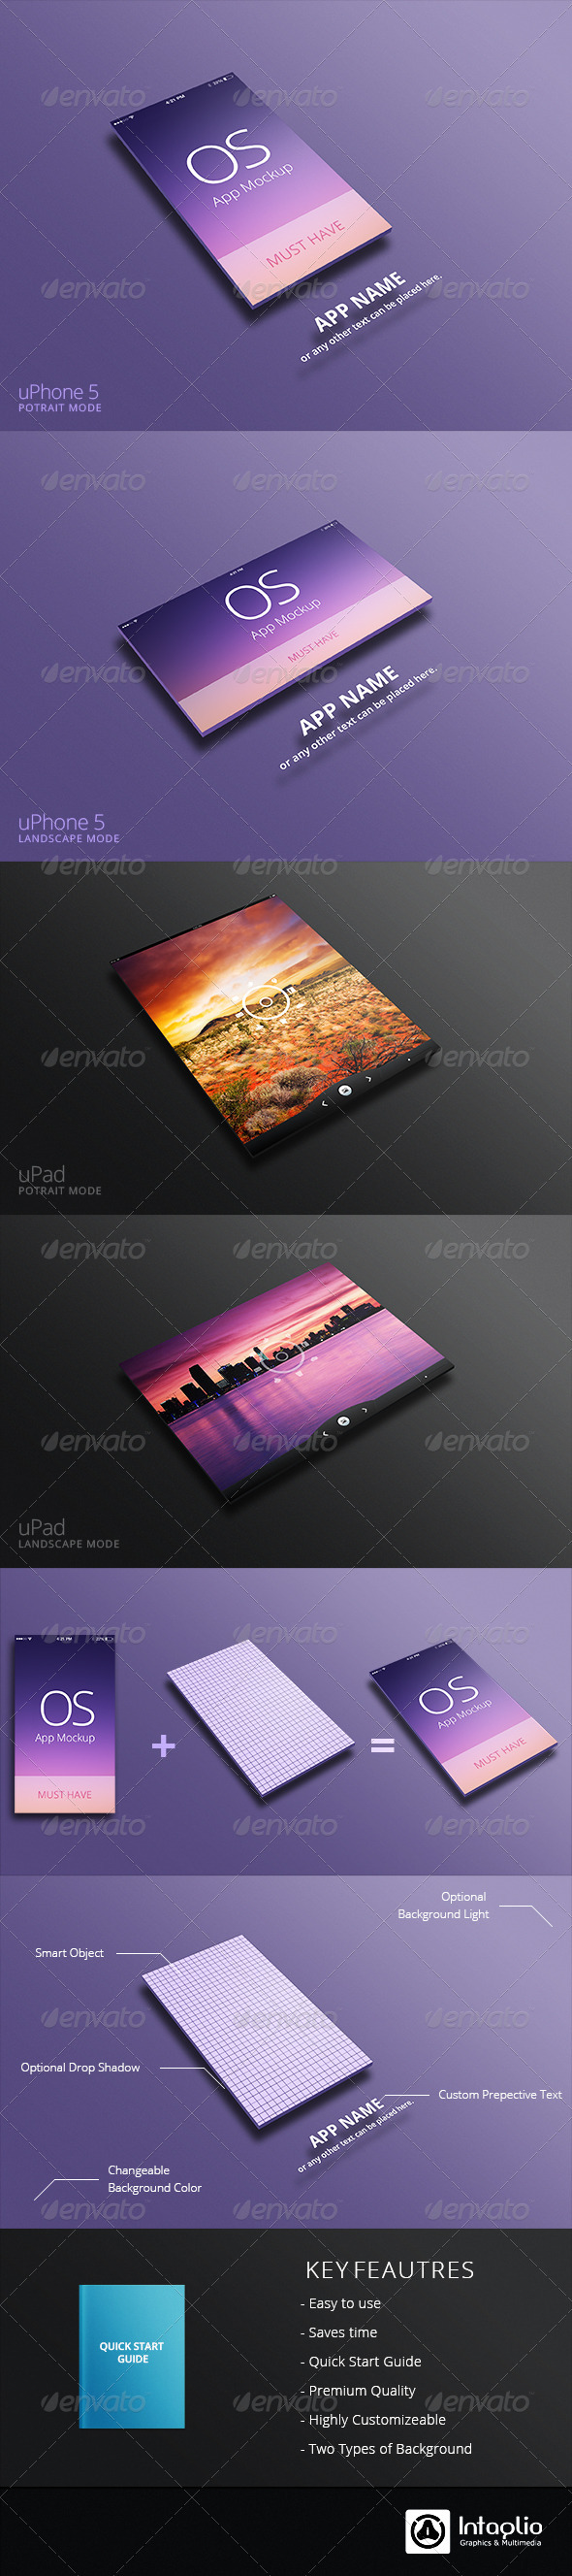 GraphicRiver App Mockup for uPhone & uPad 5311779